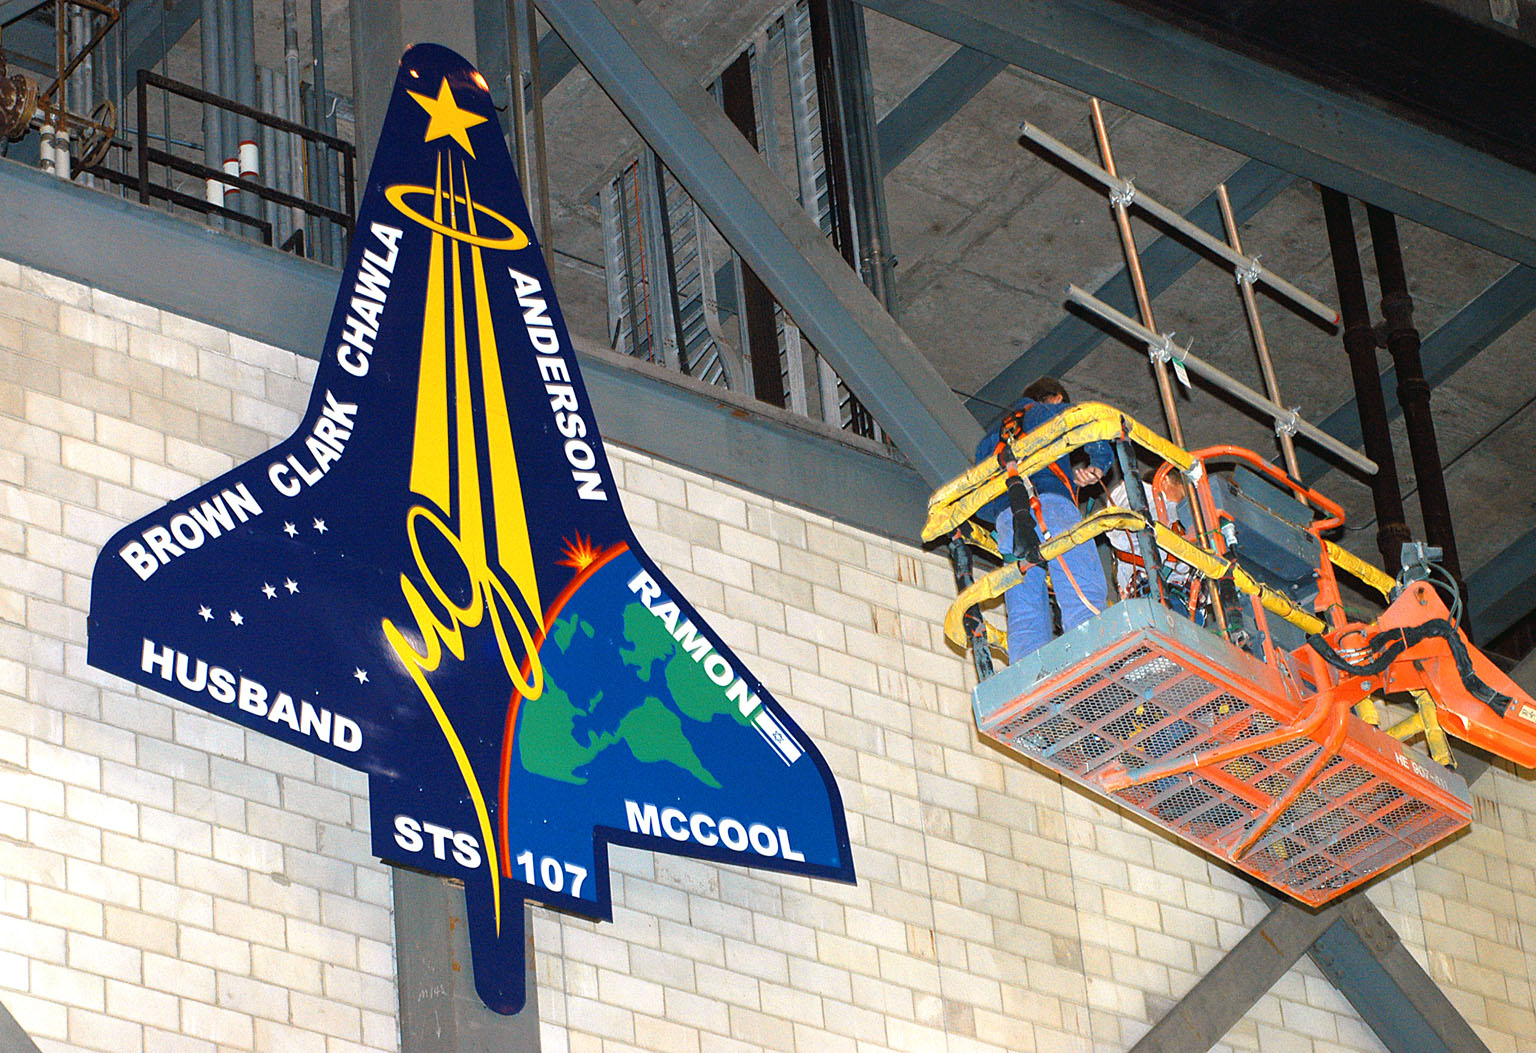 KENNEDY SPACE CENTER, FLA. - Workers install a 20-foot by 15-foot replica of the STS-107 logo above the ?A? on the A tower in the transfer aisle of the Vehicle Assembly Building. The debris from the orbiter Columbia, lost in a tragic accident on its return to Earth from the STS-107 mission, is permanently stored in the tower. A dedication ceremony Jan. 29, 2004, revealed a plaque being installed in the storage area in honor of ?Columbia, the crew of STS-107, and their loved ones.?